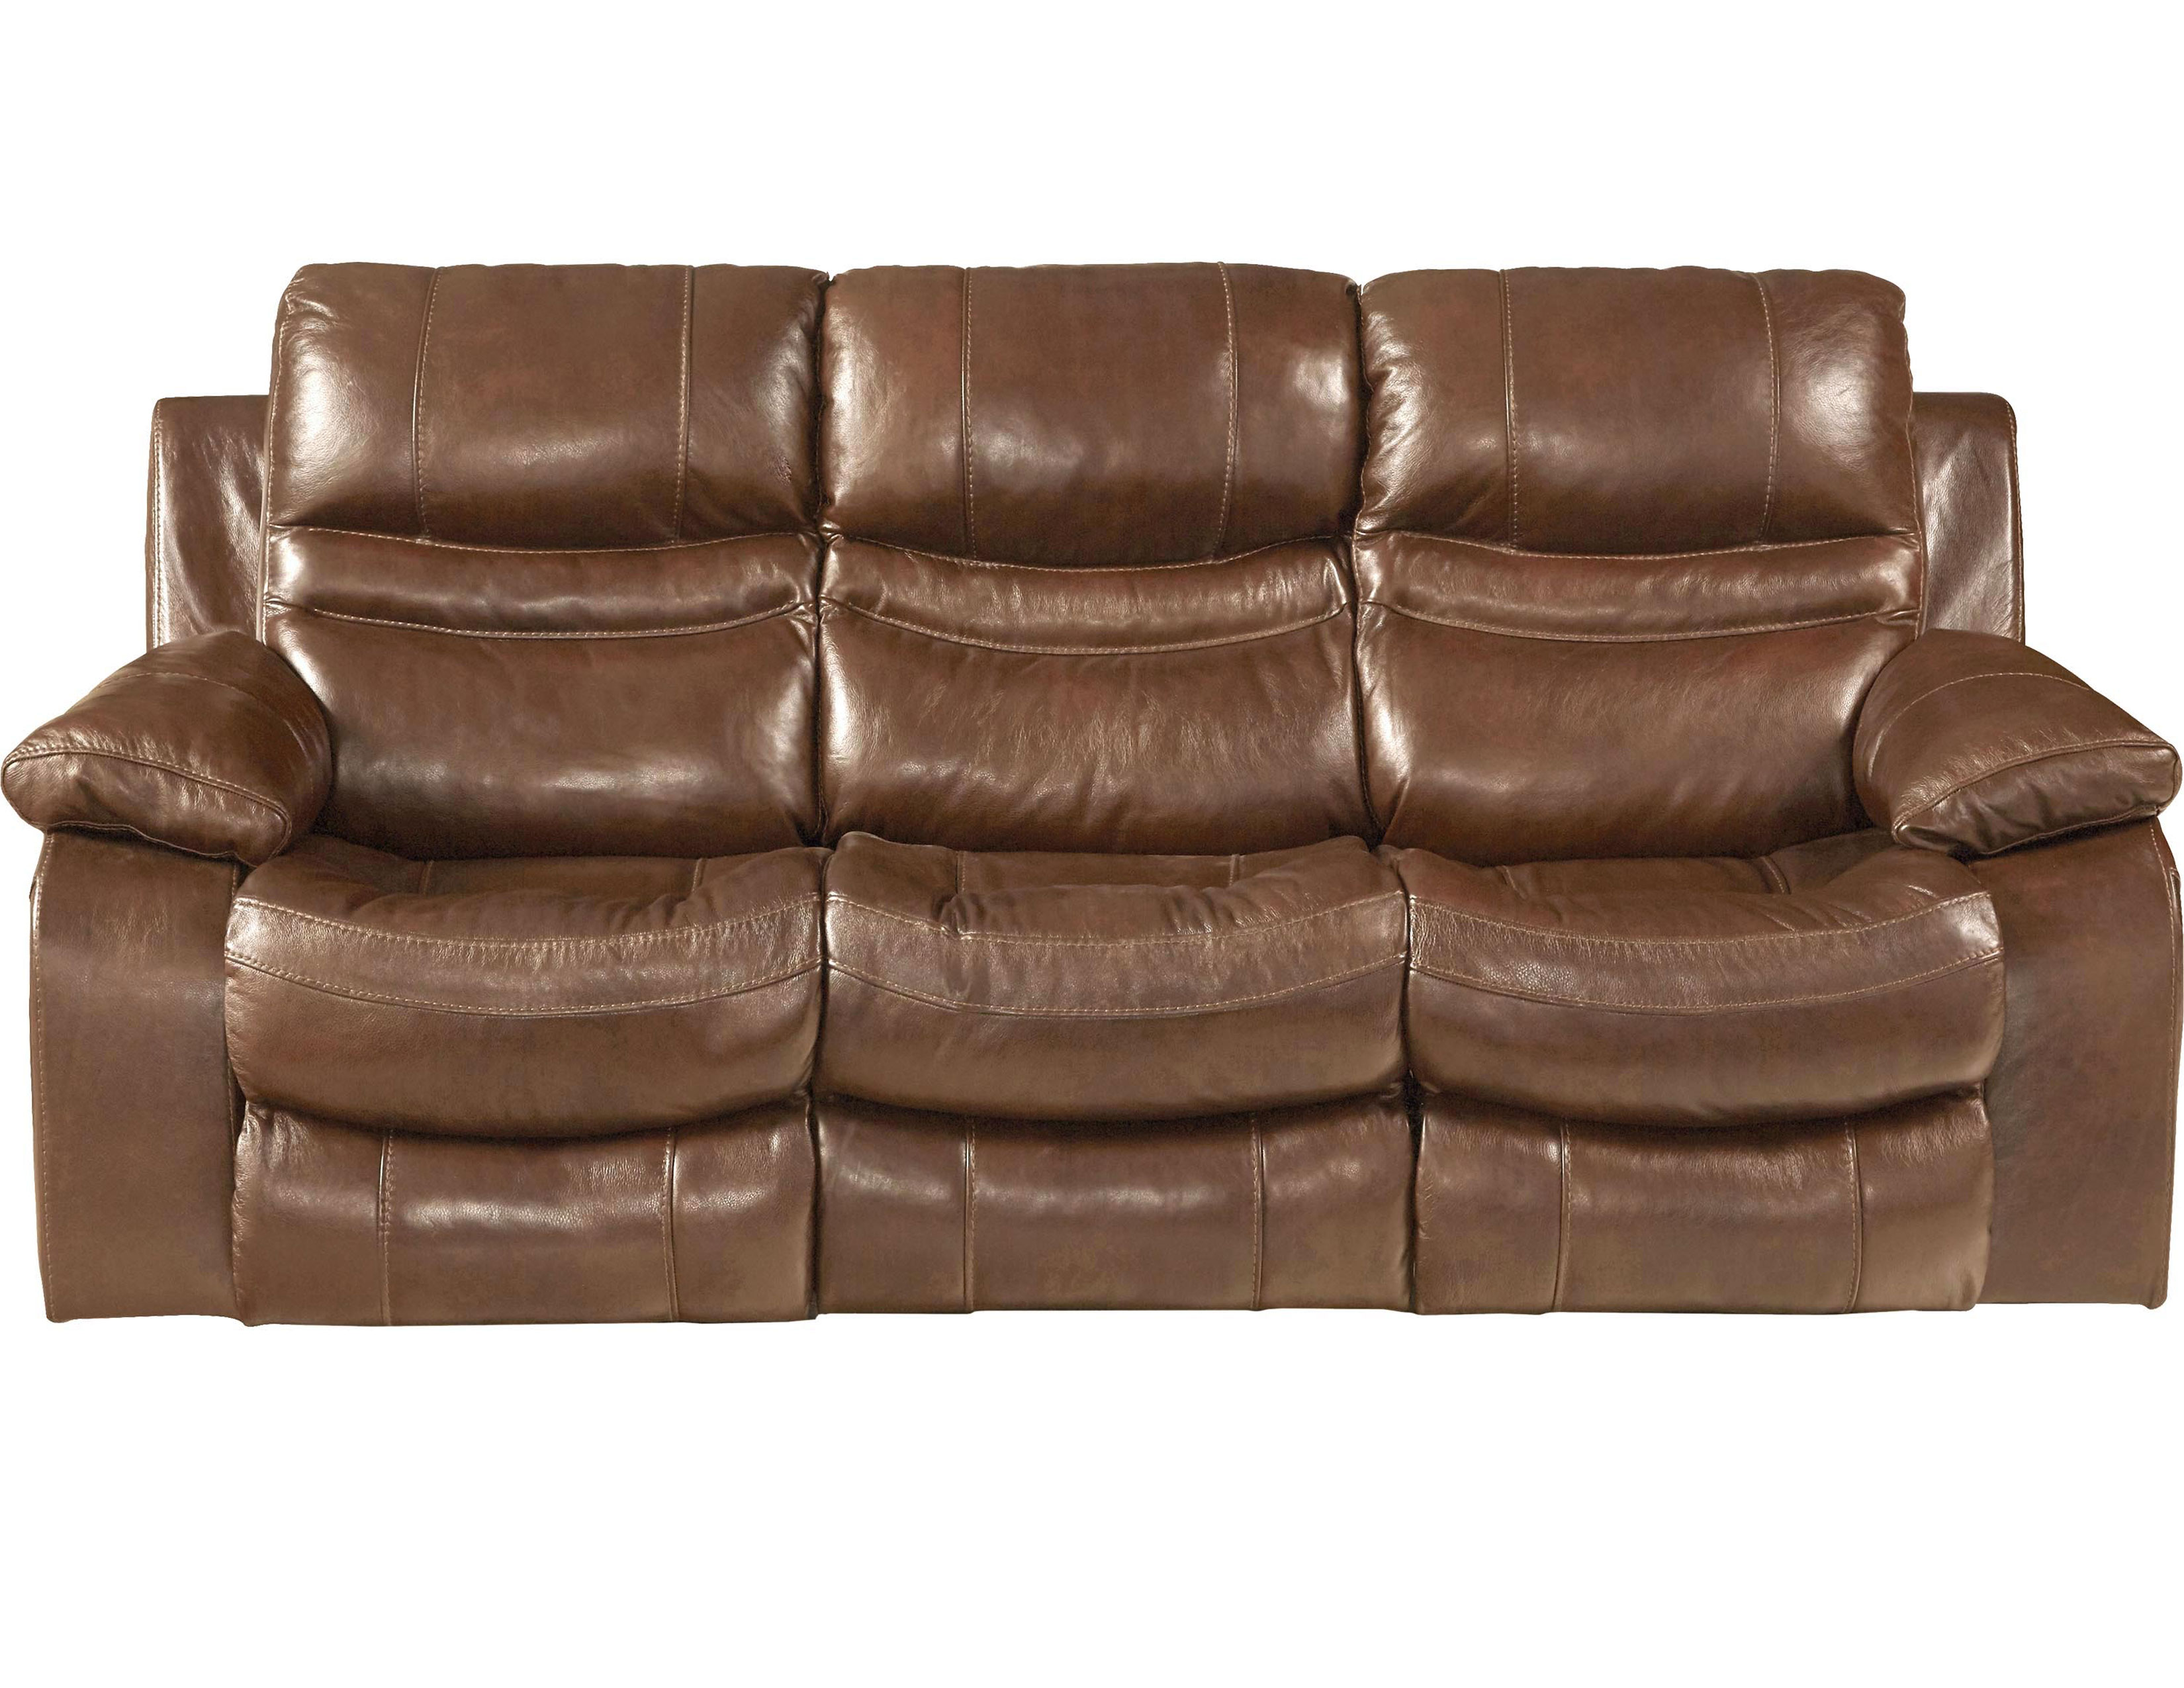 Patton 90 Italian Top Grain Leather Sofas And Sectionals